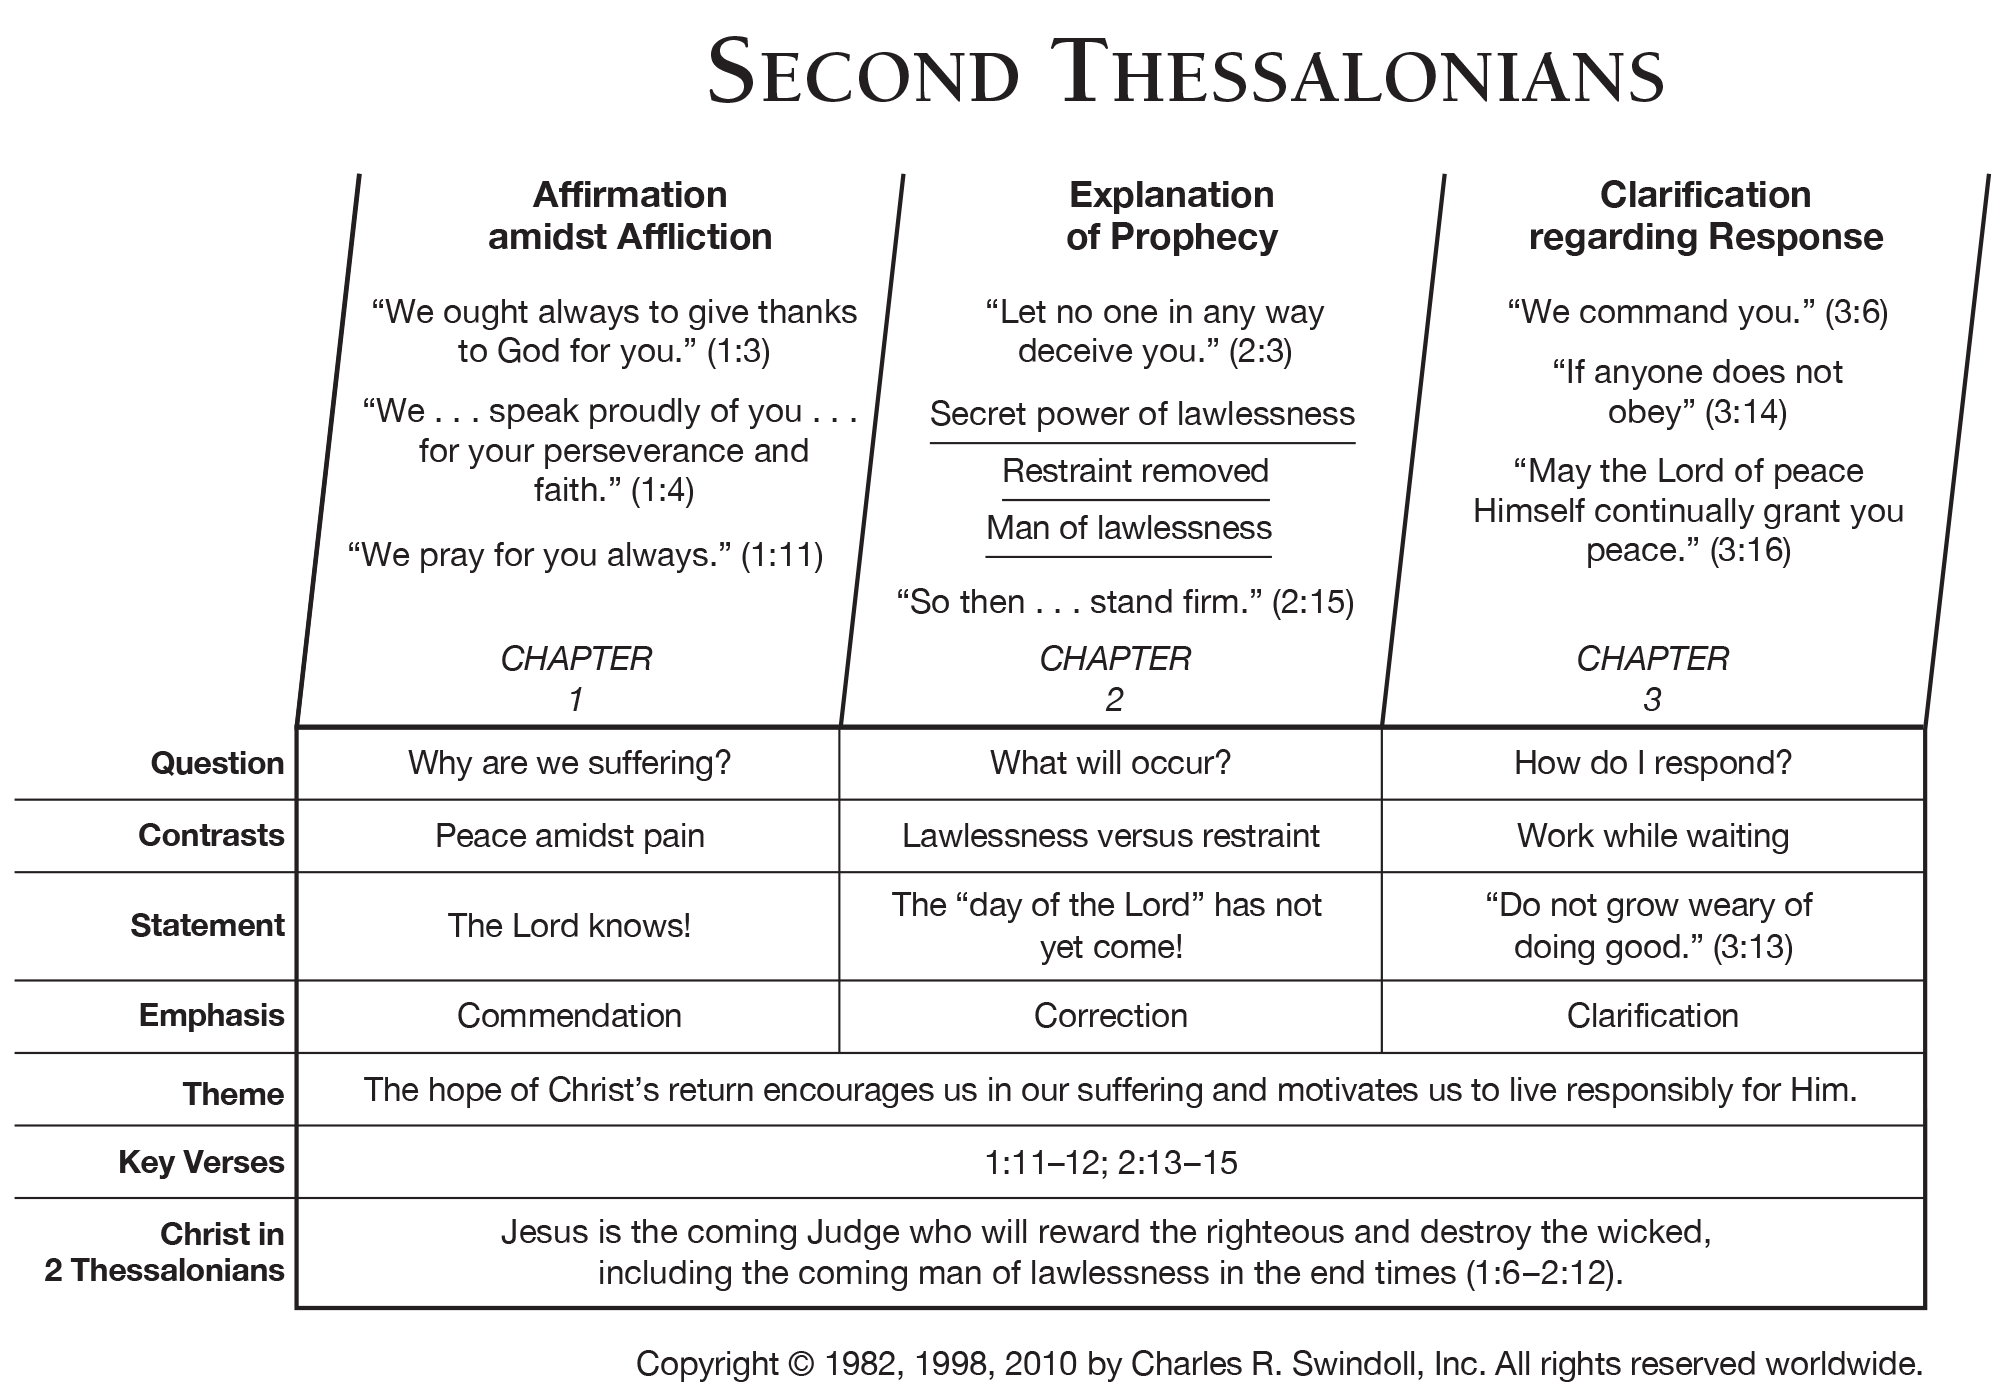 Book Of Second Thessalonians Overview